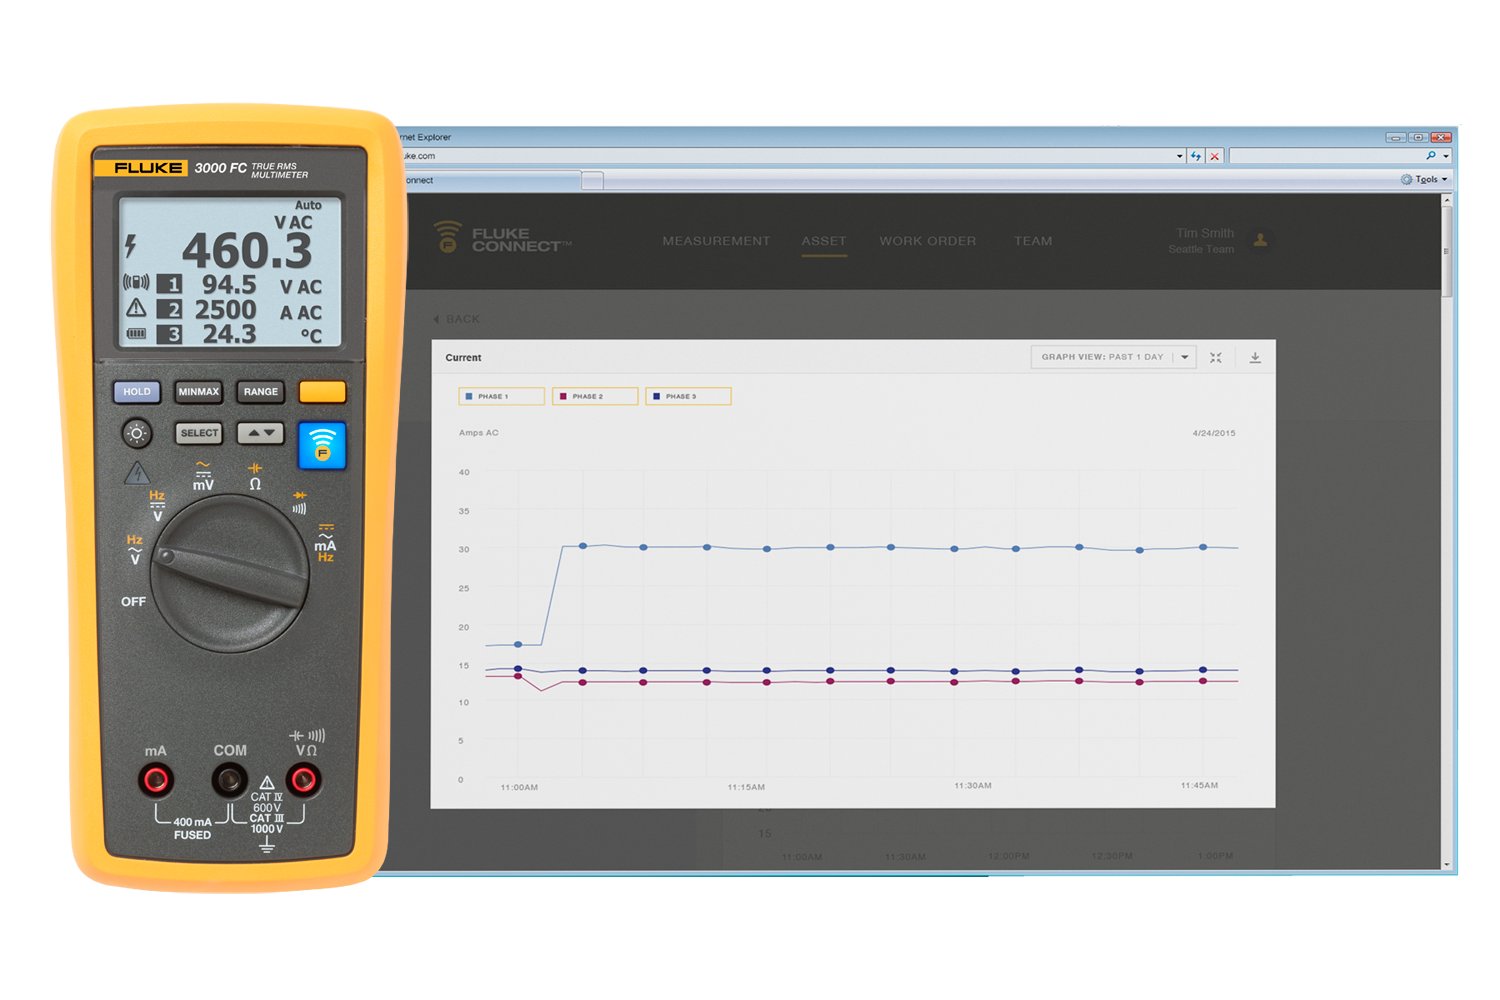 Fluke 3000 Series Wireless Digital Multimeters with Fluke Connect